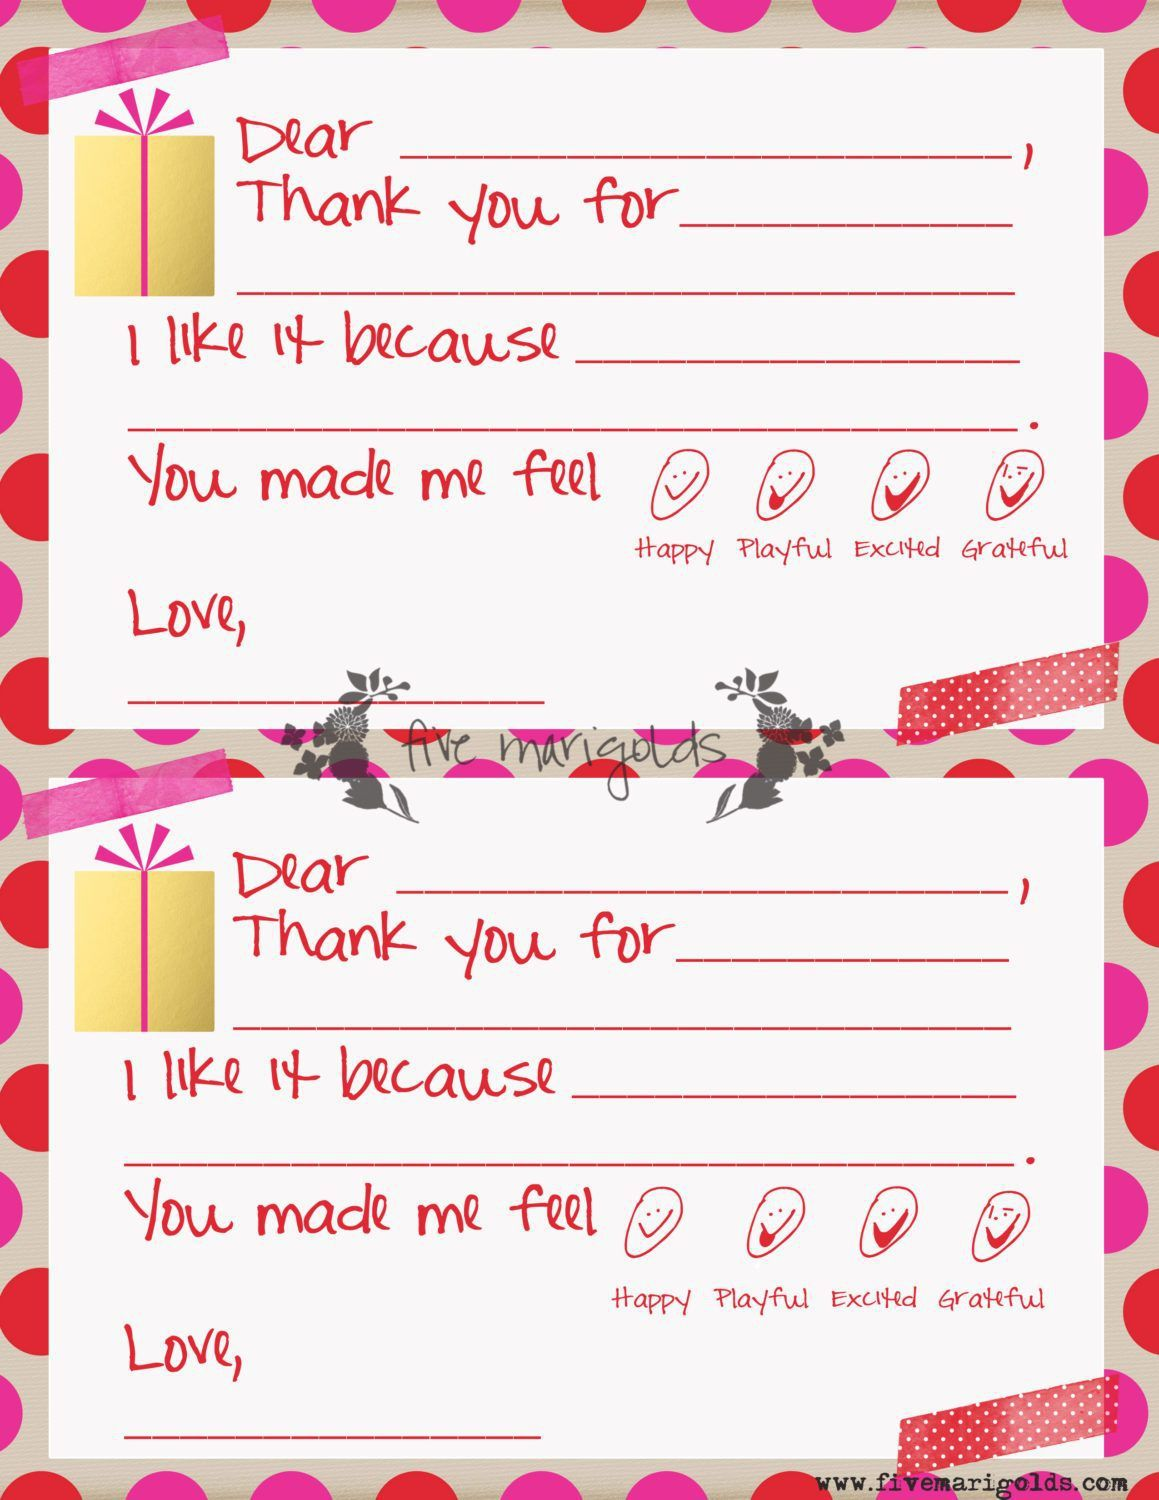 006 Remarkable Christma Thank You Note Template Free Concept  Letter CardFull